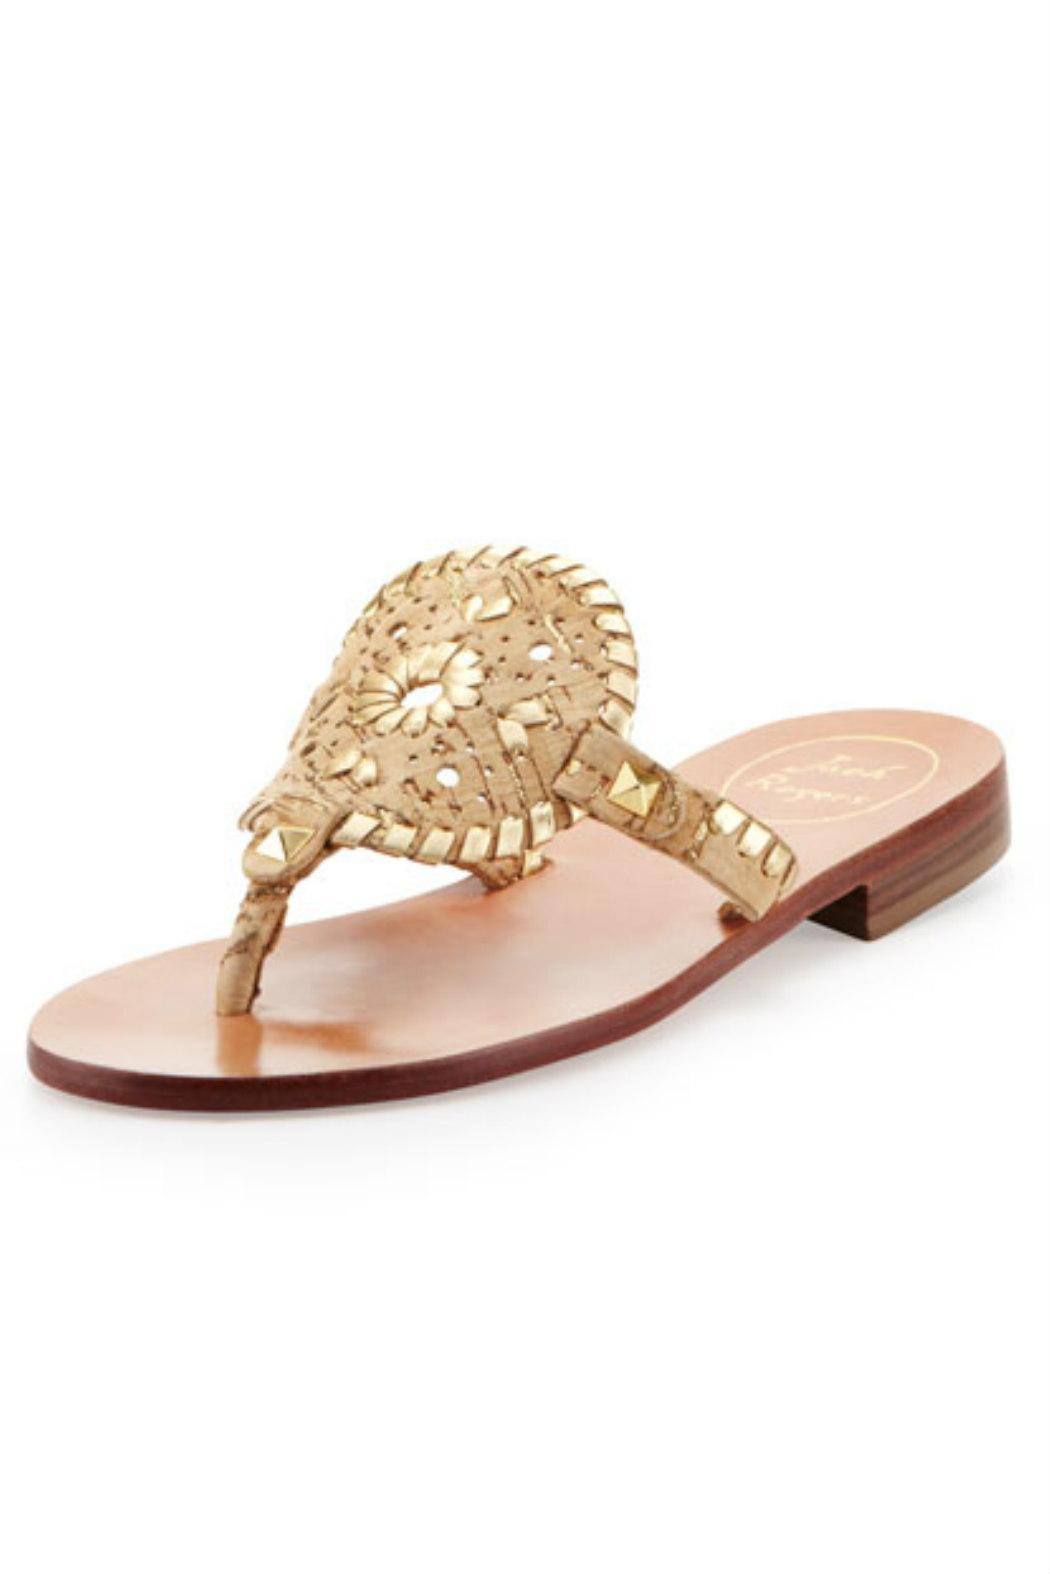 0364e3e7e73 Jack Rogers Georgica Sandal from Statesboro by Sole — Shoptiques